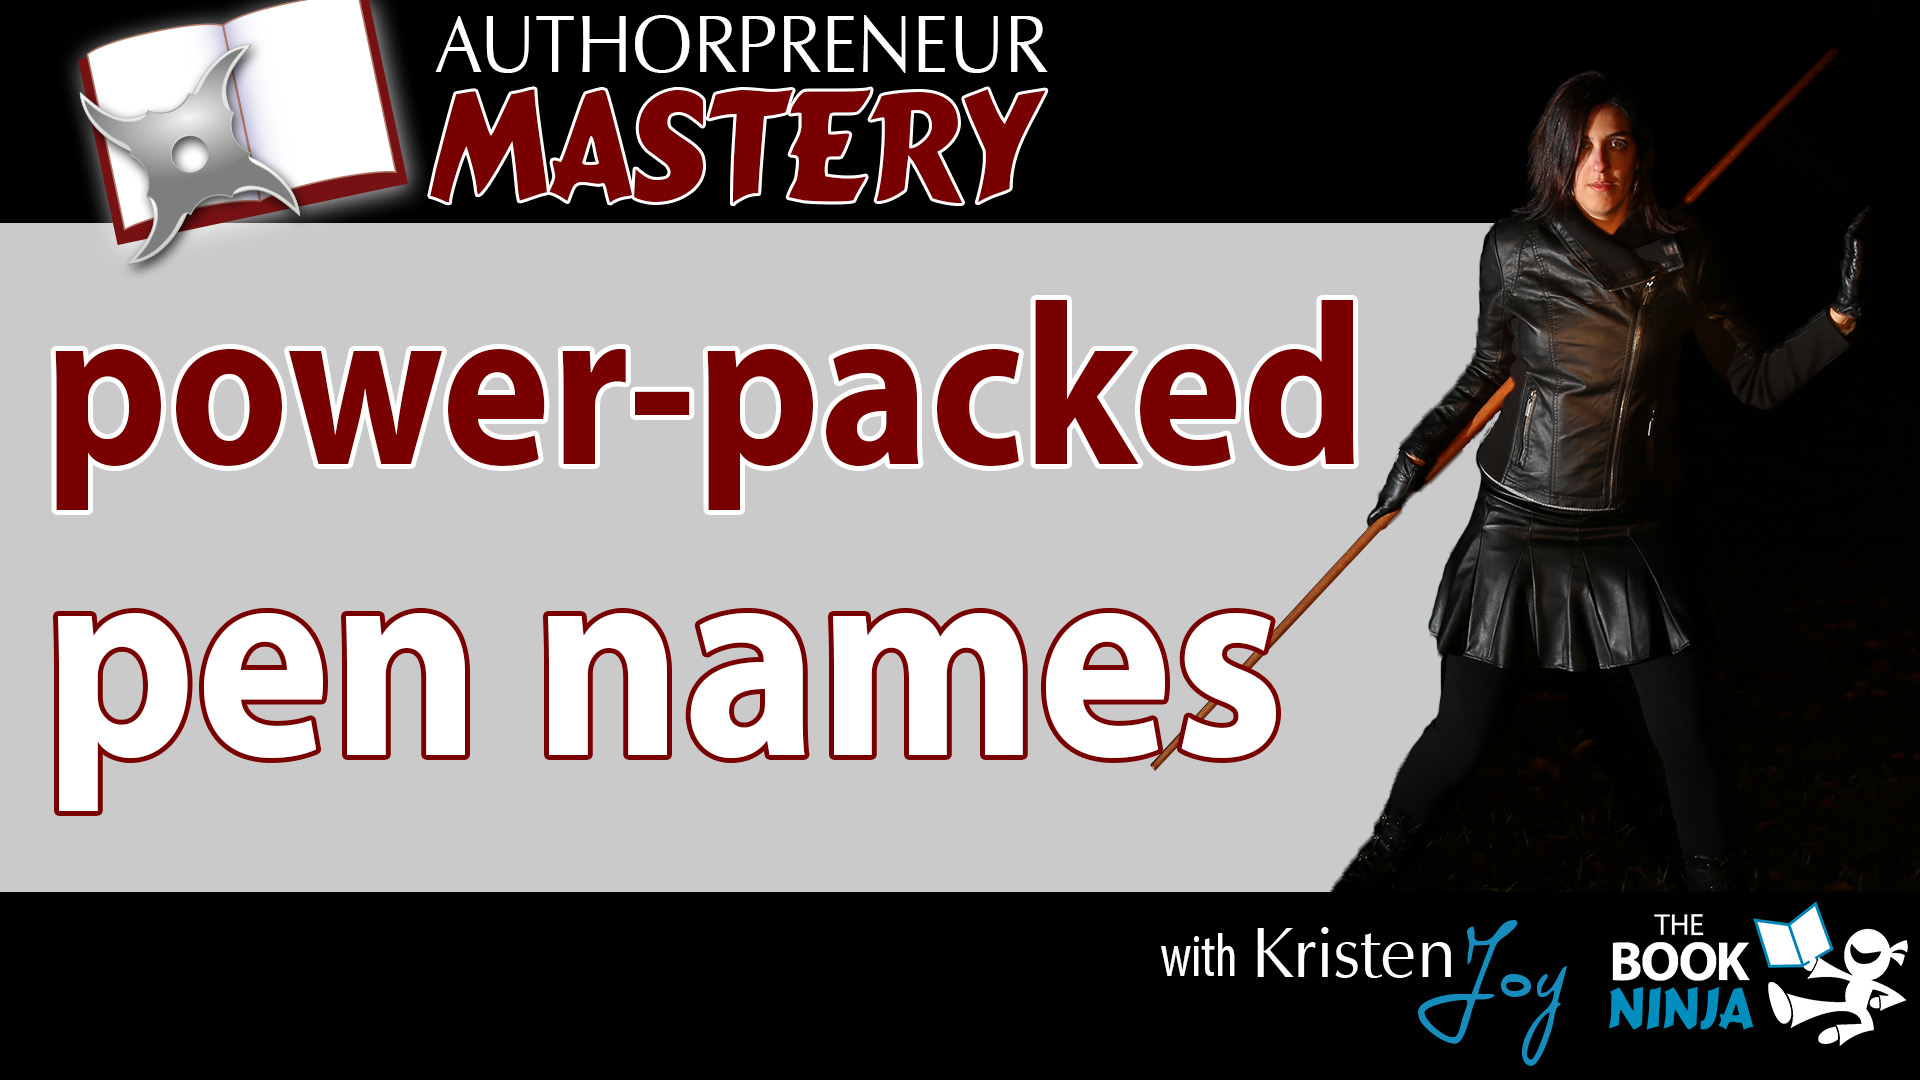 AM-Power-Packed Pen Names - The Book Ninja®